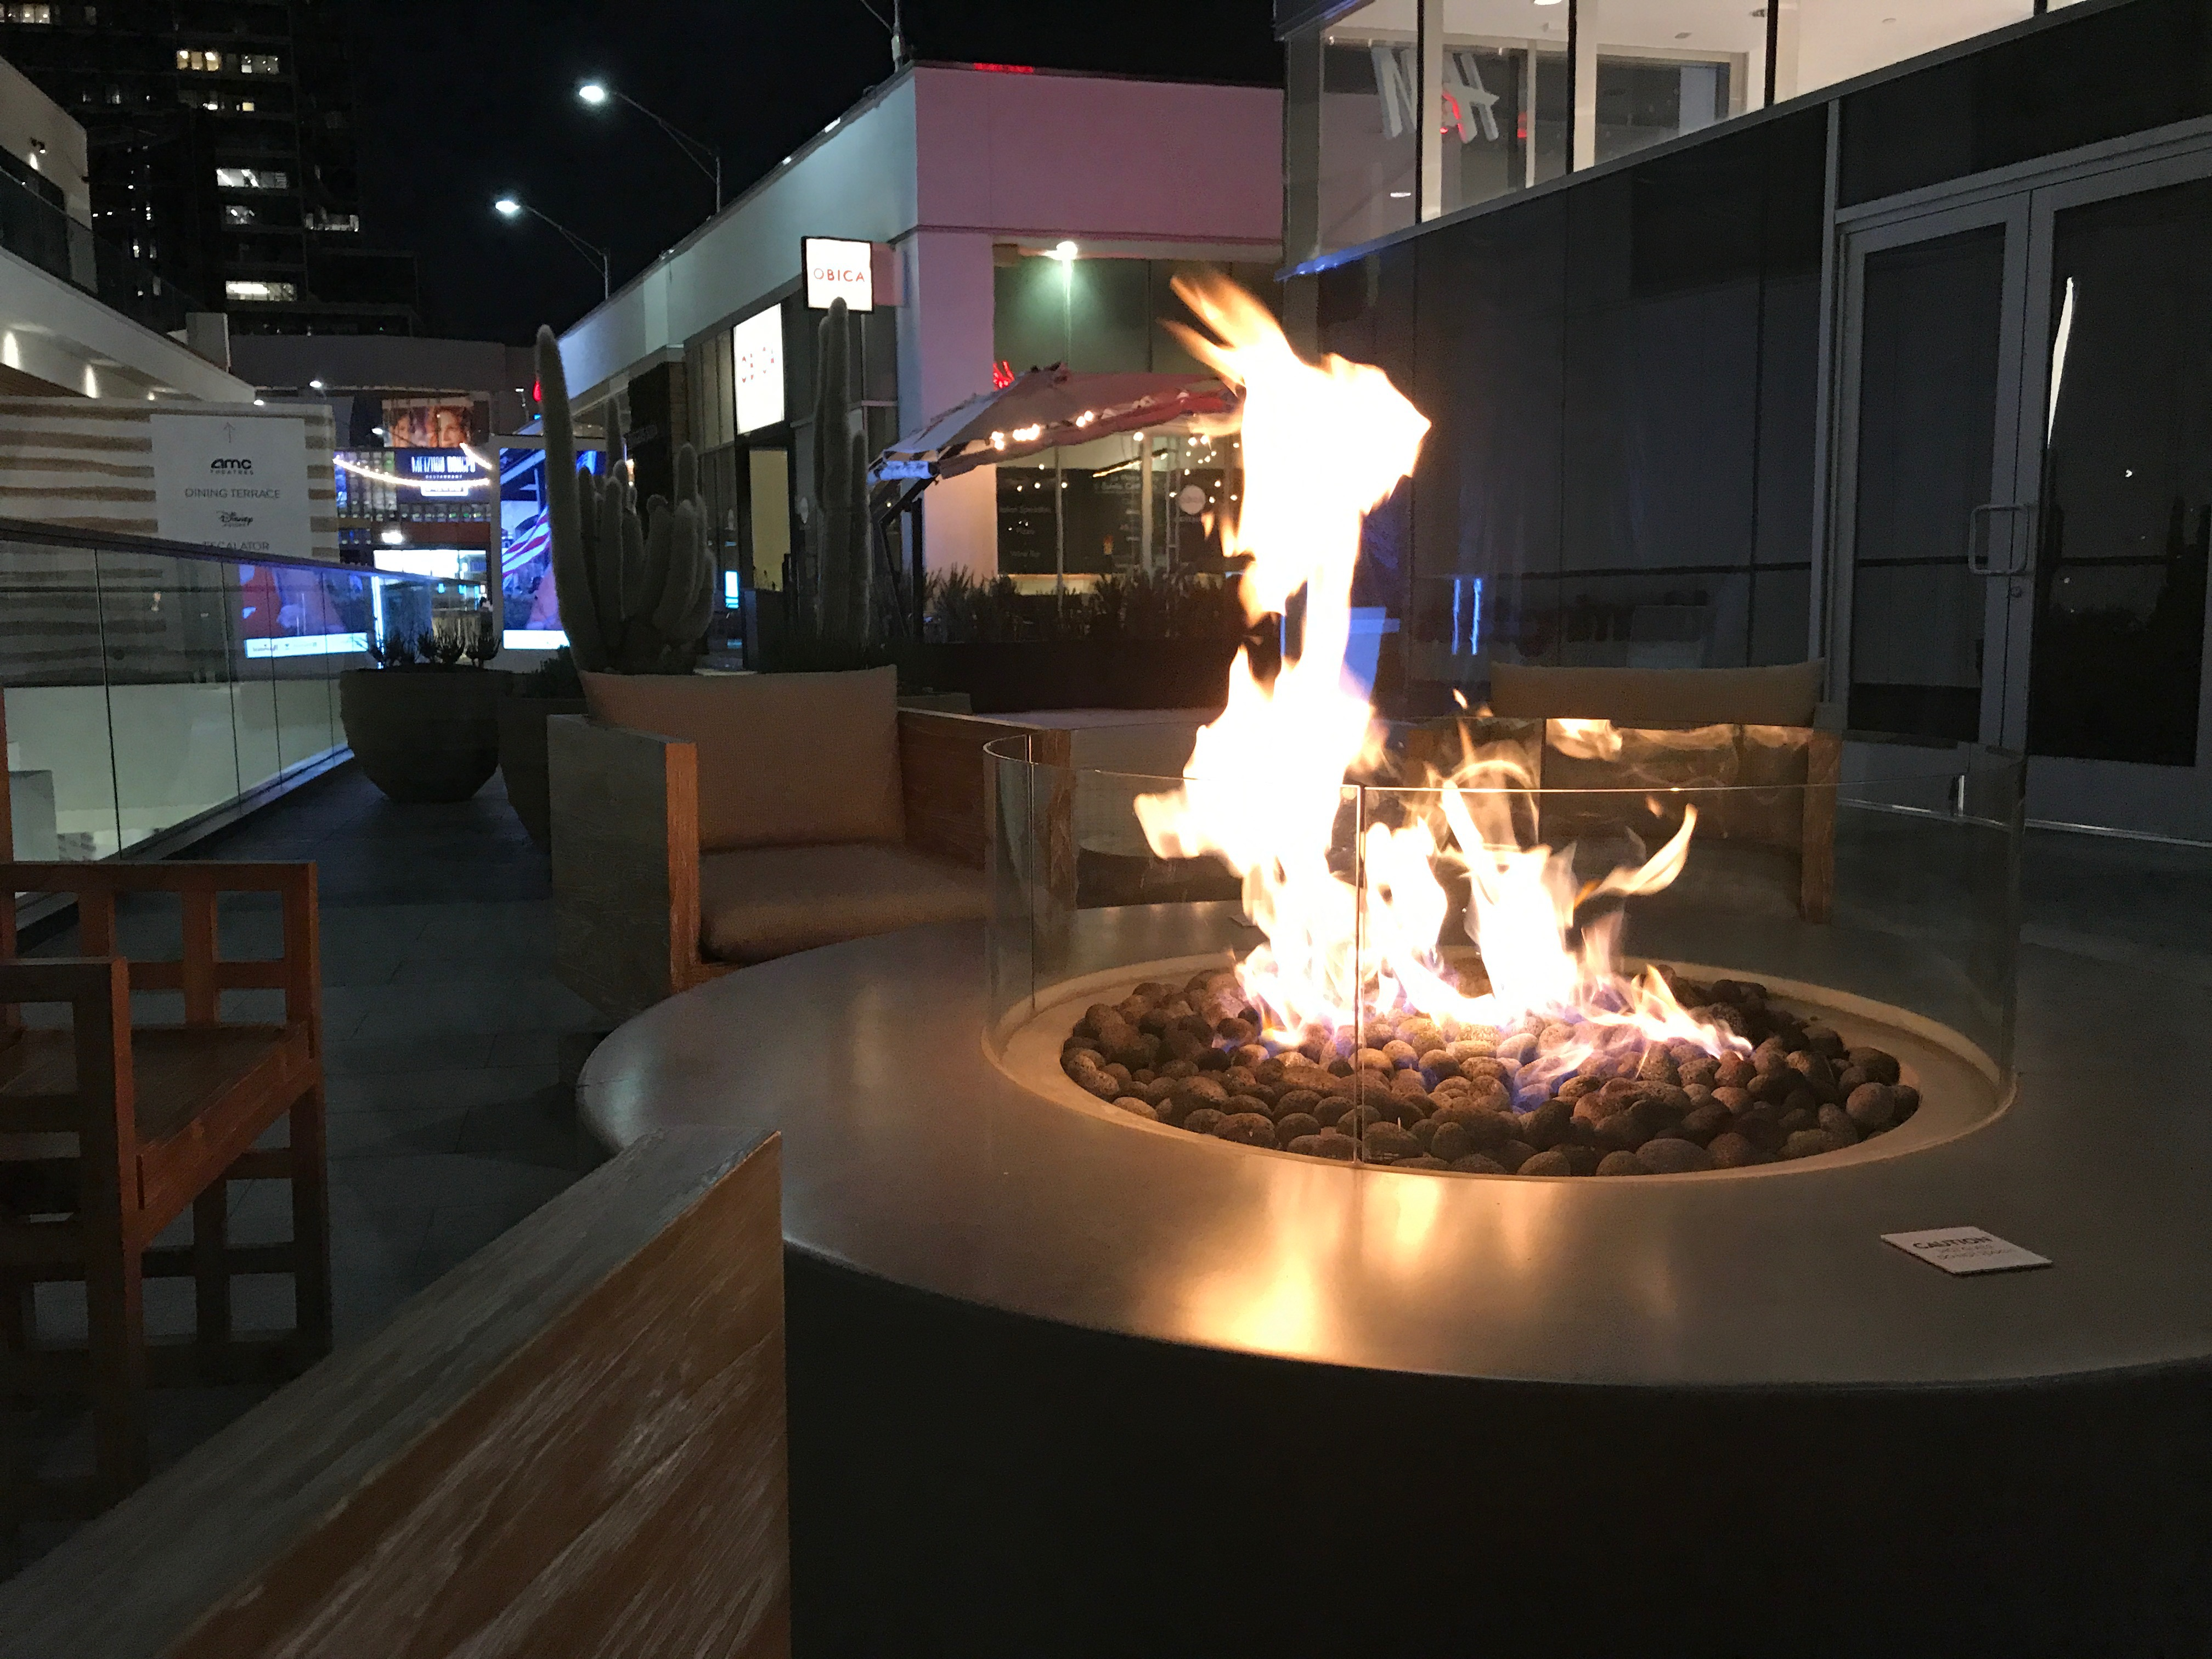 The fire pits in the lounging areas are lit every day at sundown.